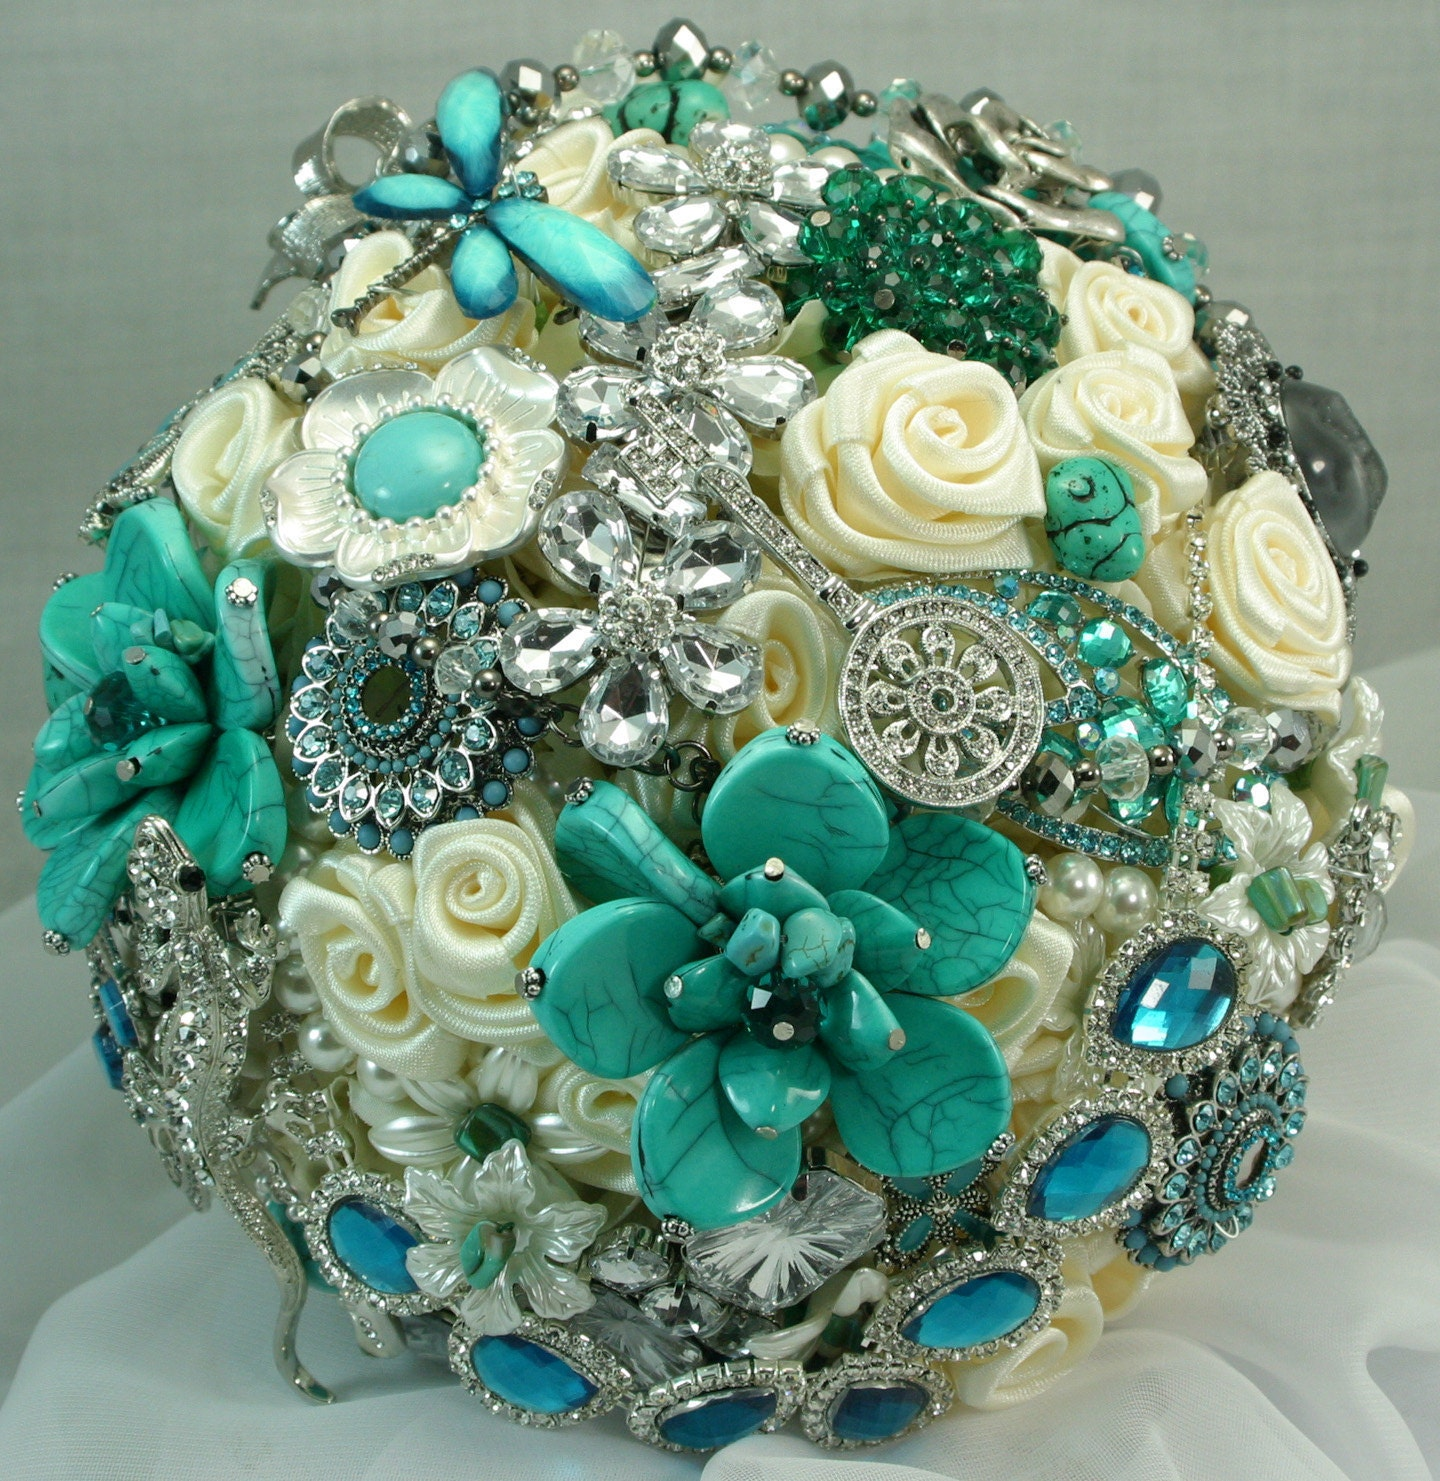 Turquoise Flowers For Wedding: Your Place To Buy And Sell All Things Handmade